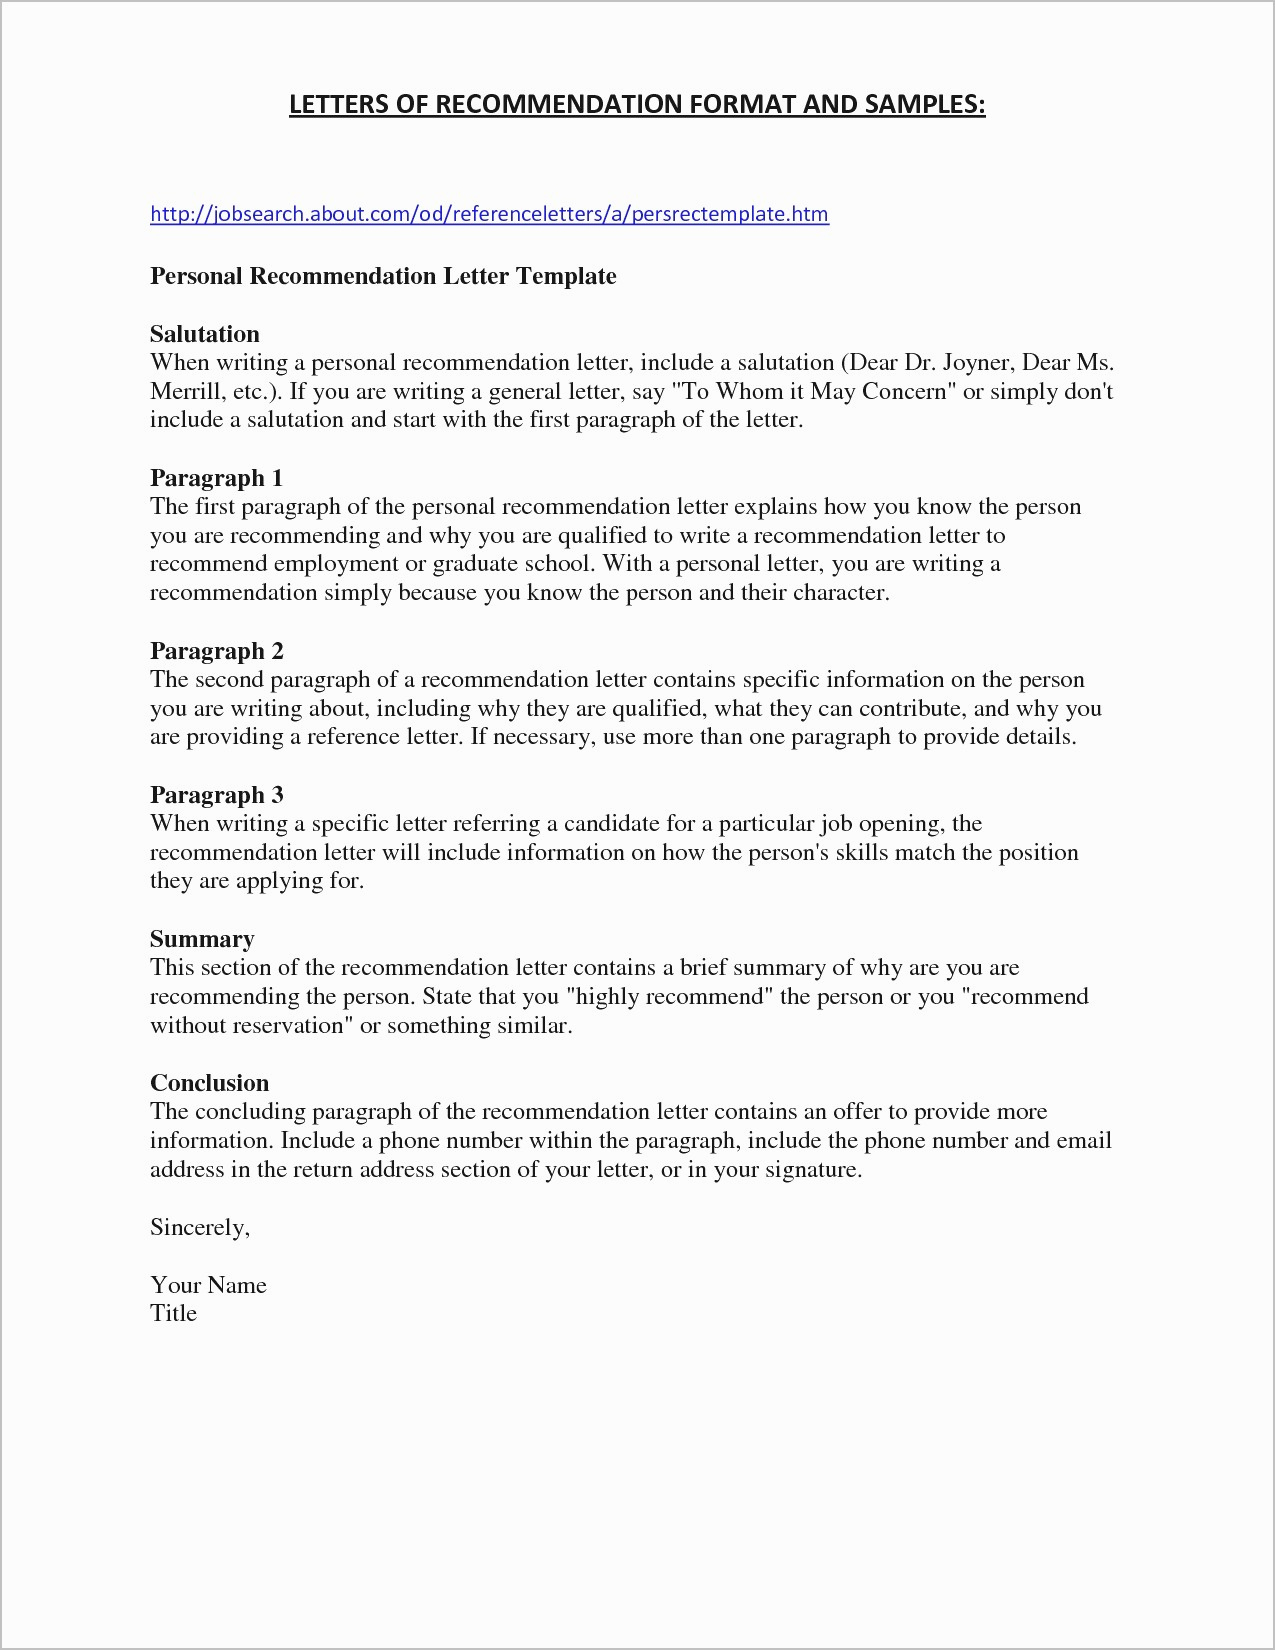 Letter to soldier Template - Letter to sol R Example New New Grad Nursing Cover Letter Google